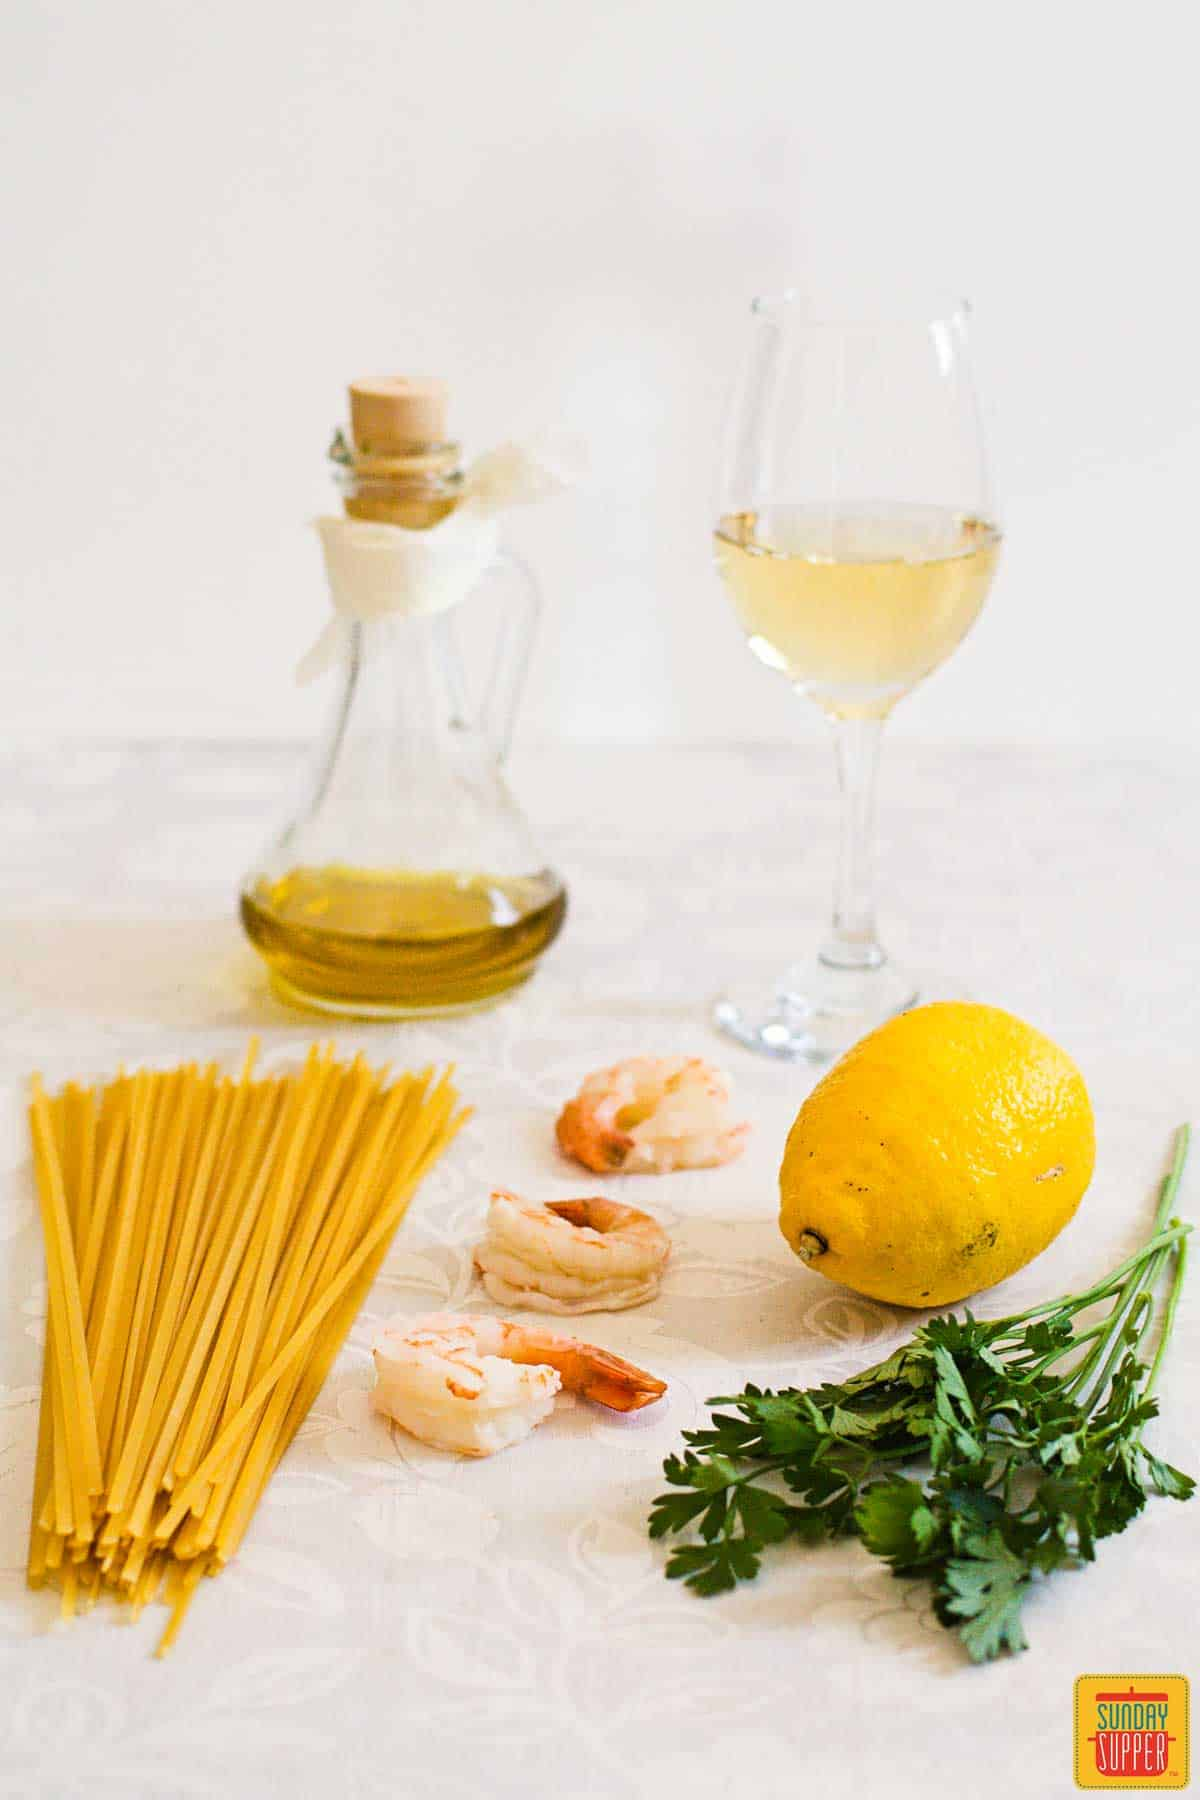 Shrimp scampi ingredients on the table